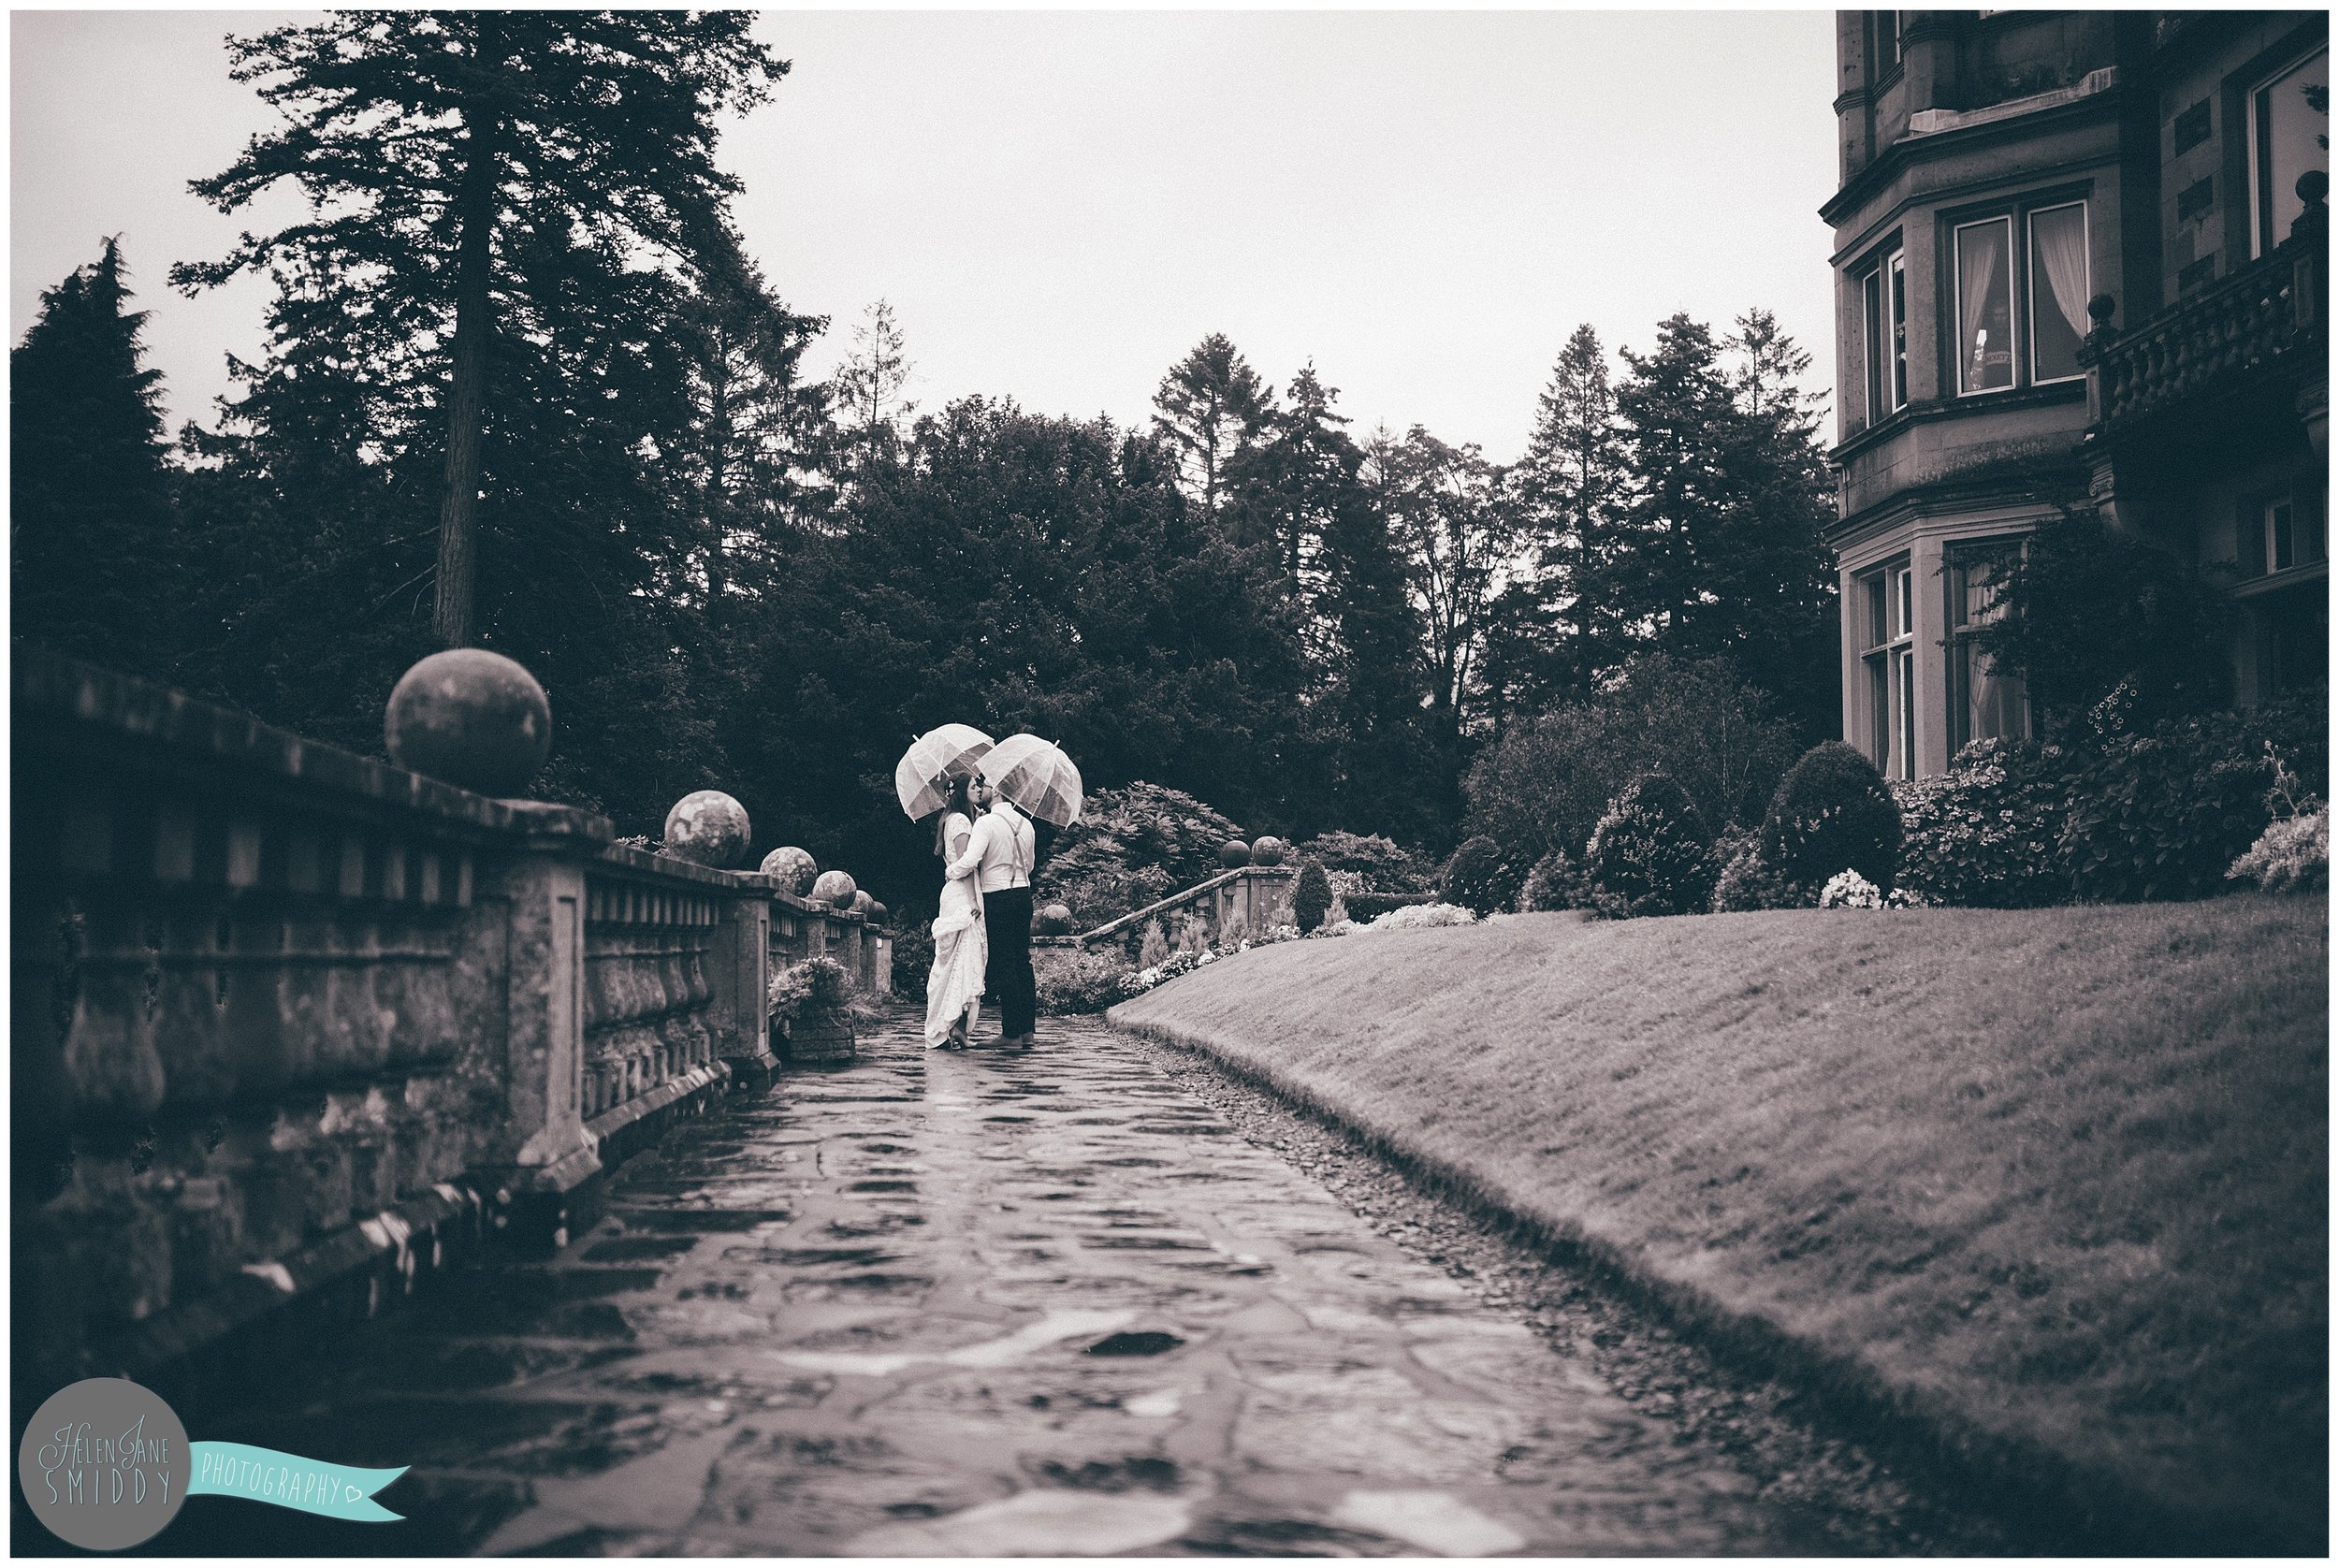 langdalechasehotel-lakewindermere-lakedistrict-weddingvenue-weddingphotography-cheshirewedding-cheshireweddingphotography-cheshireweddingphotographer-lakedistrictweddingphotographer-lakedistrictweddingphotography-weddingphotography-weddingphotographer-intimatewedding-familywedding-brideandgroom-bride-langdalechase-summerwedding-lacegown-lacedress-laceweddingdress-tomford-bouquet-weddingbouquet-roses-vintage-jetty